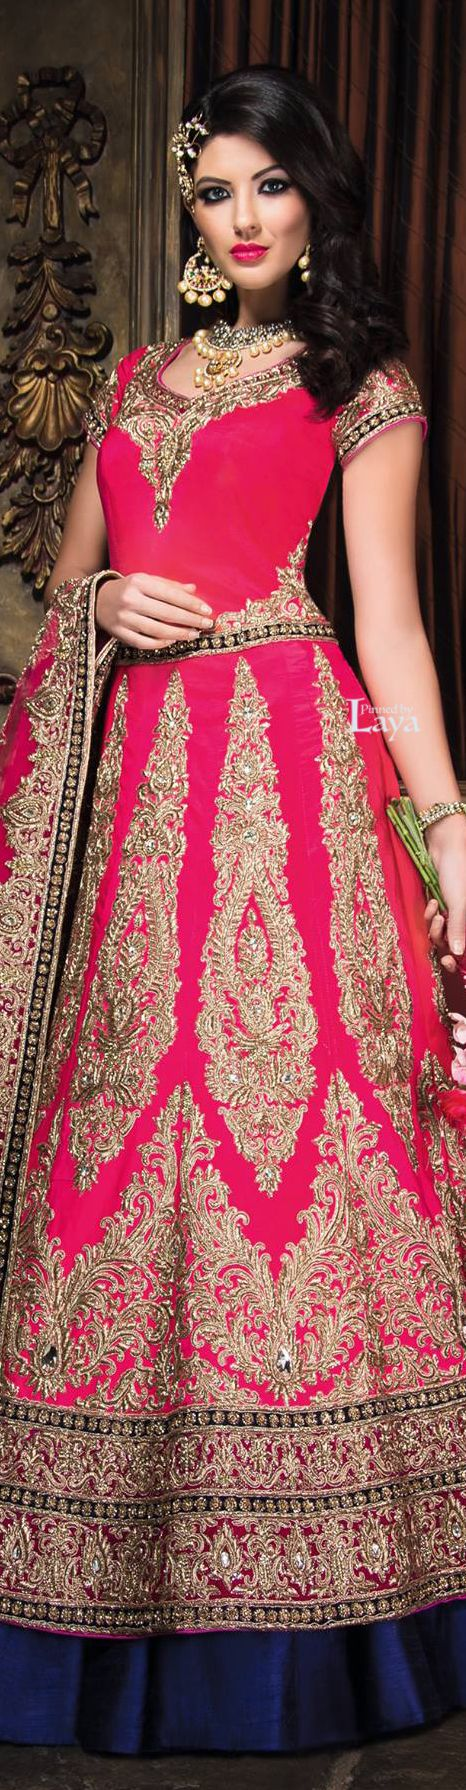 Pink bridal lehenga with necklace and earrings. Indian fashion.